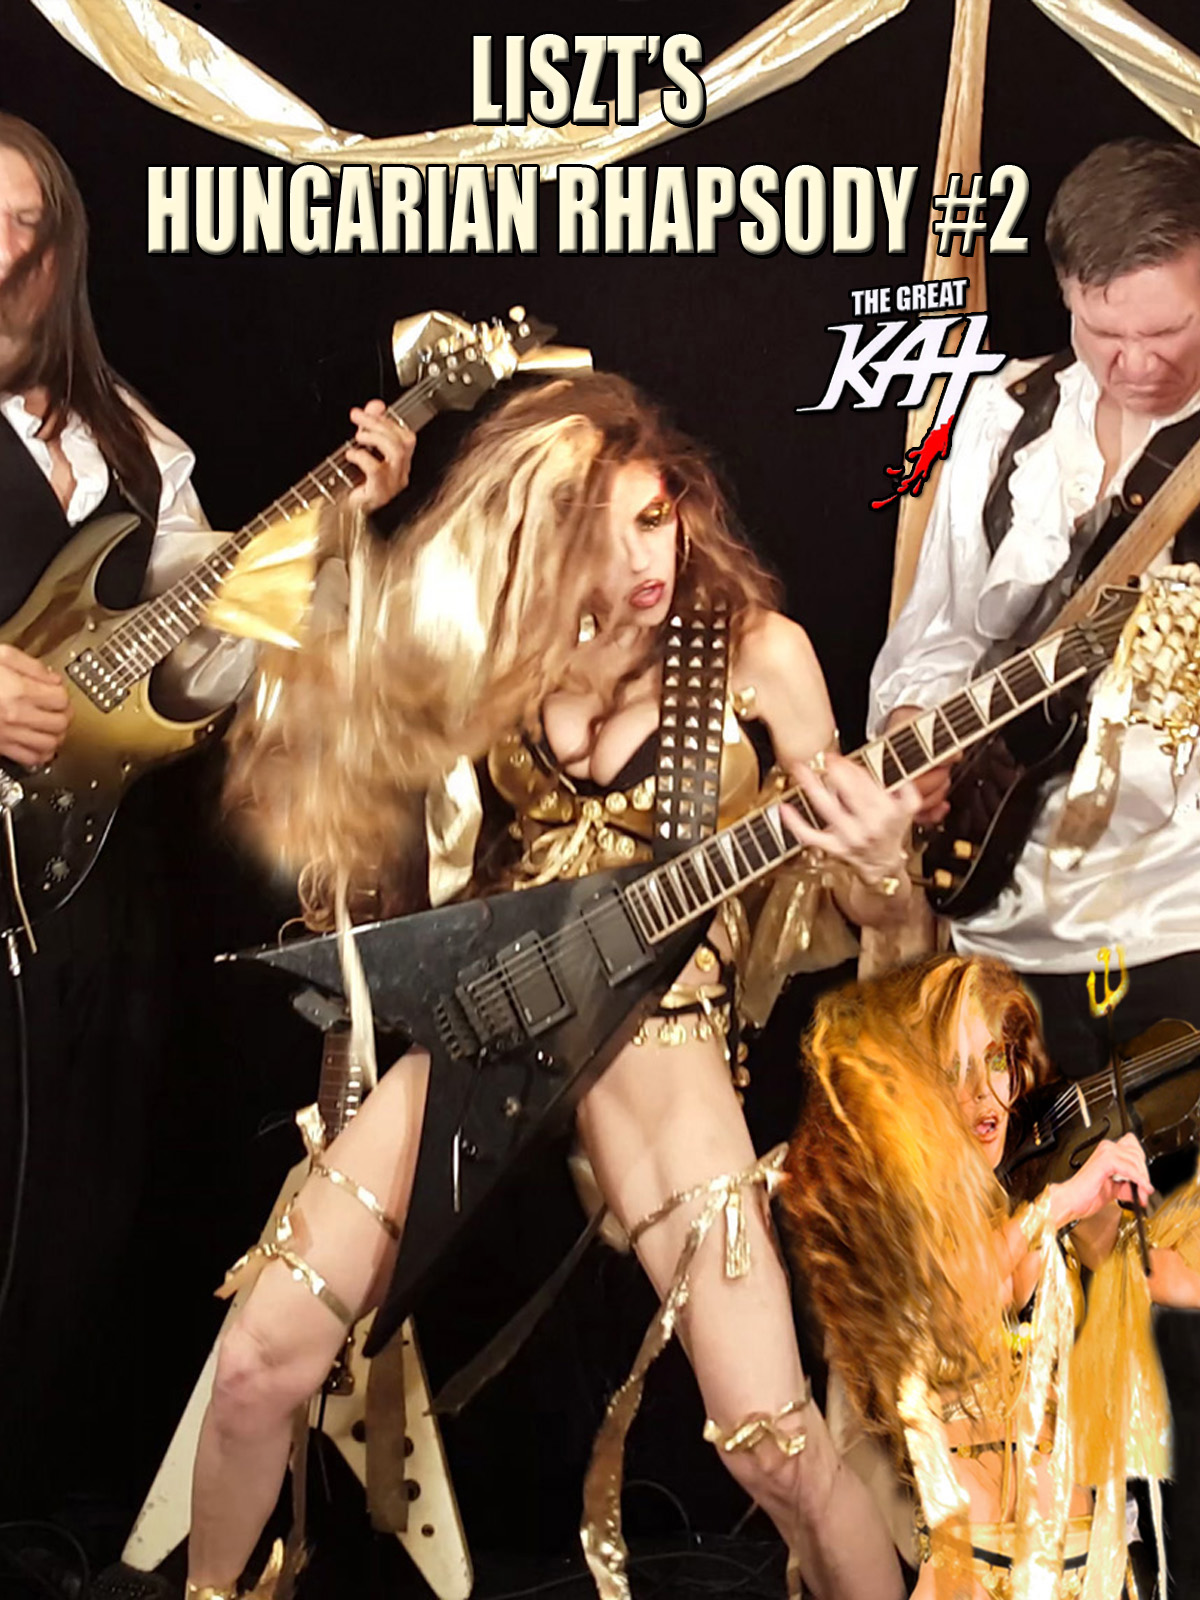 """Female Classical/Metal shredder & Juilliard grad, The Great Kat (top 10 fastest shredders of all time) shreds both guitar and violin and leads her all-male stud band on Liszt's """"Hungarian Rhapsody #2"""". Vlad the Impaler, a.k.a. Dracula - the evil 15th century Prince, joins The Great Kat in torturing her willing victims & Franz Liszt accompanies Kat on piano. Insane & outrageous."""